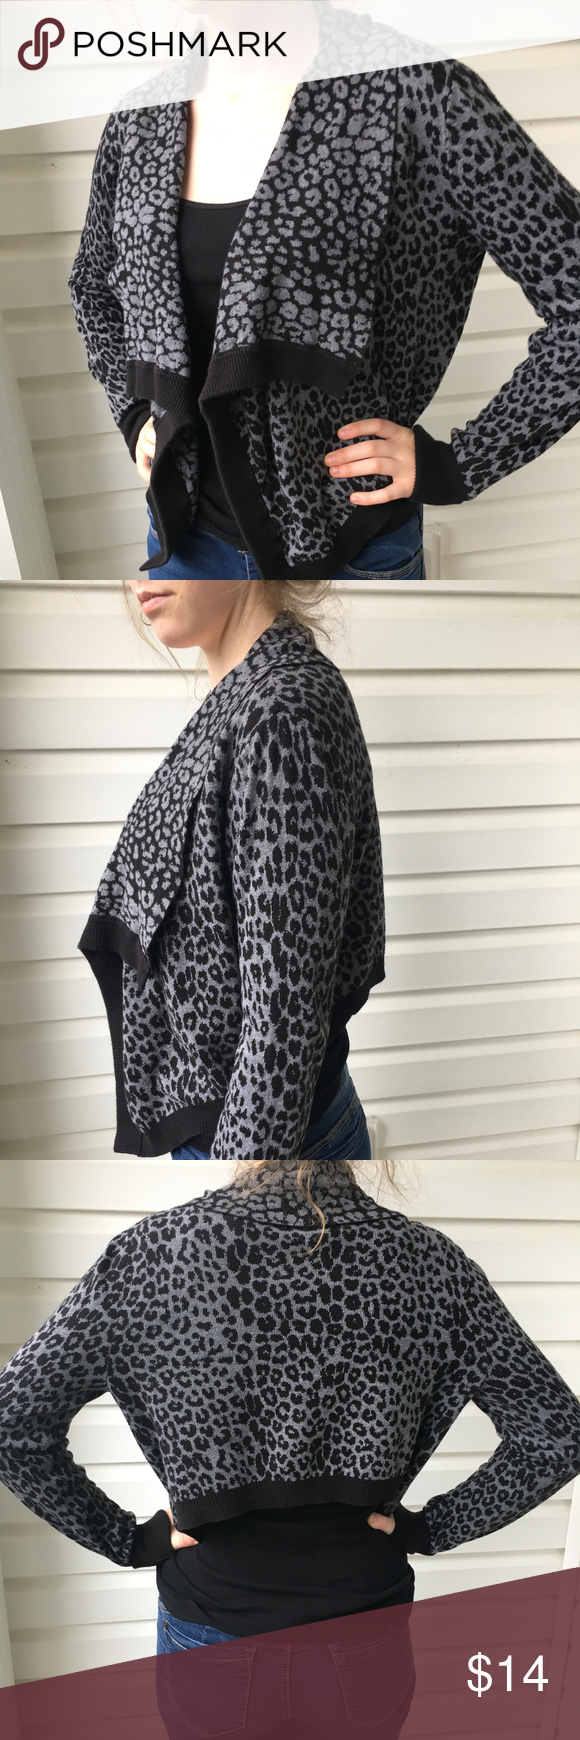 Express Leopard Print Cropped Cardigan - Size M | Leopards